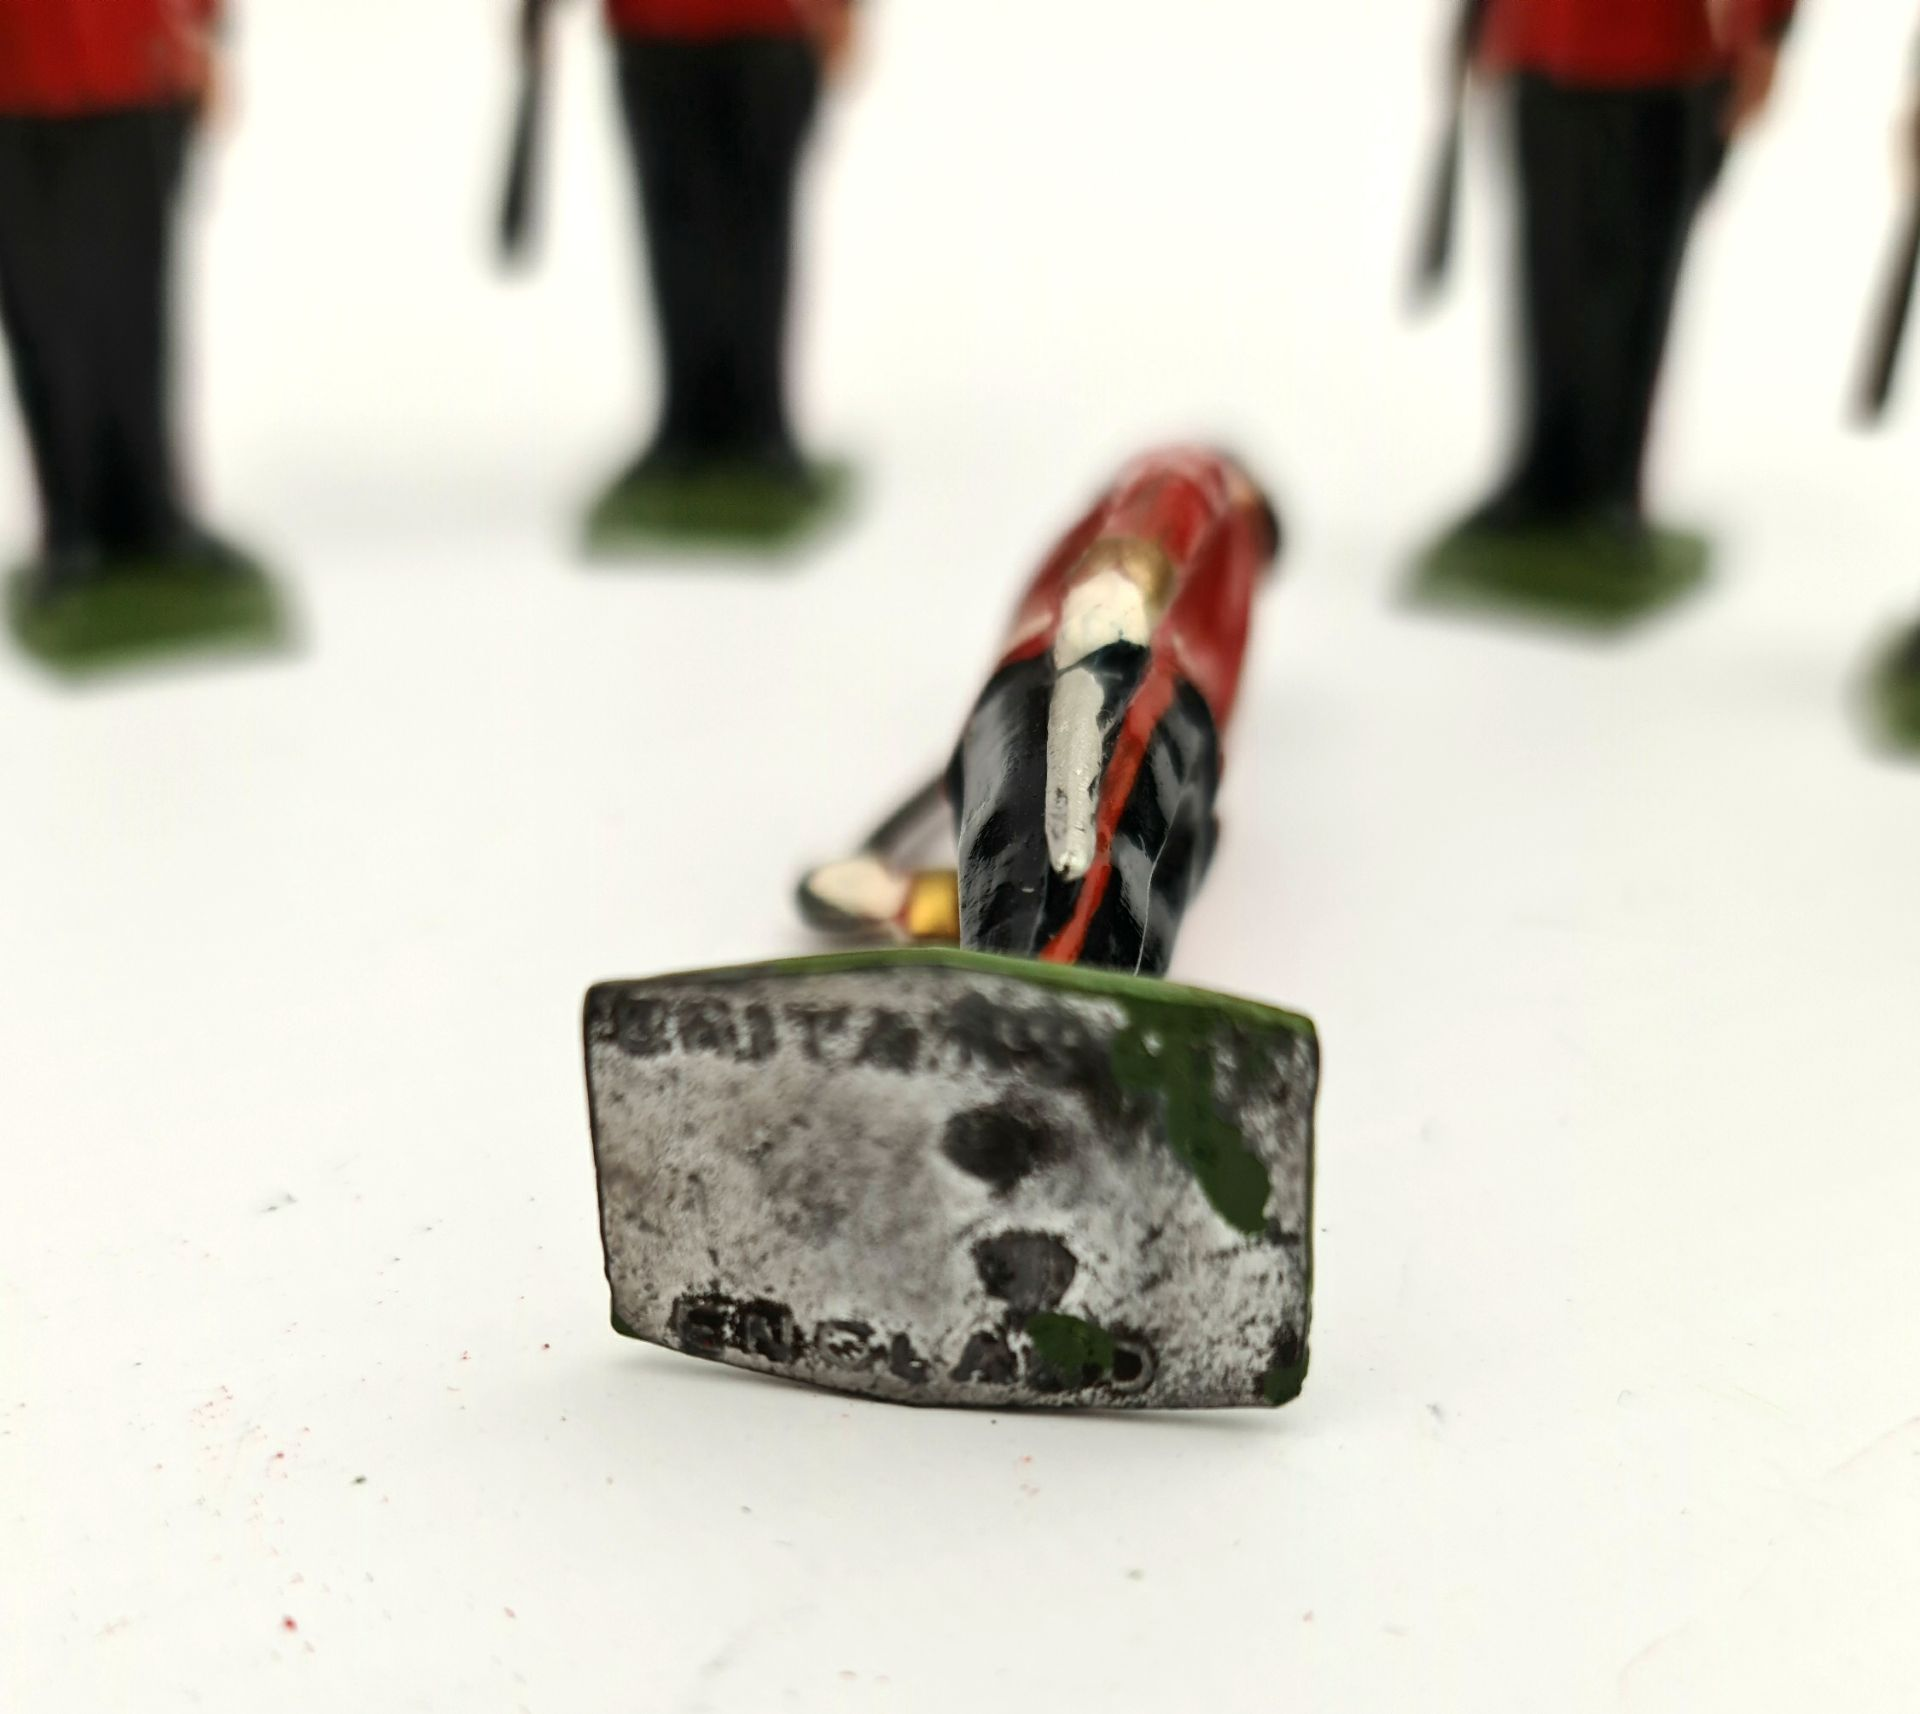 Vintage 7 Britain's Cast Metal Toy Soldiers 6cm tall - Image 3 of 3